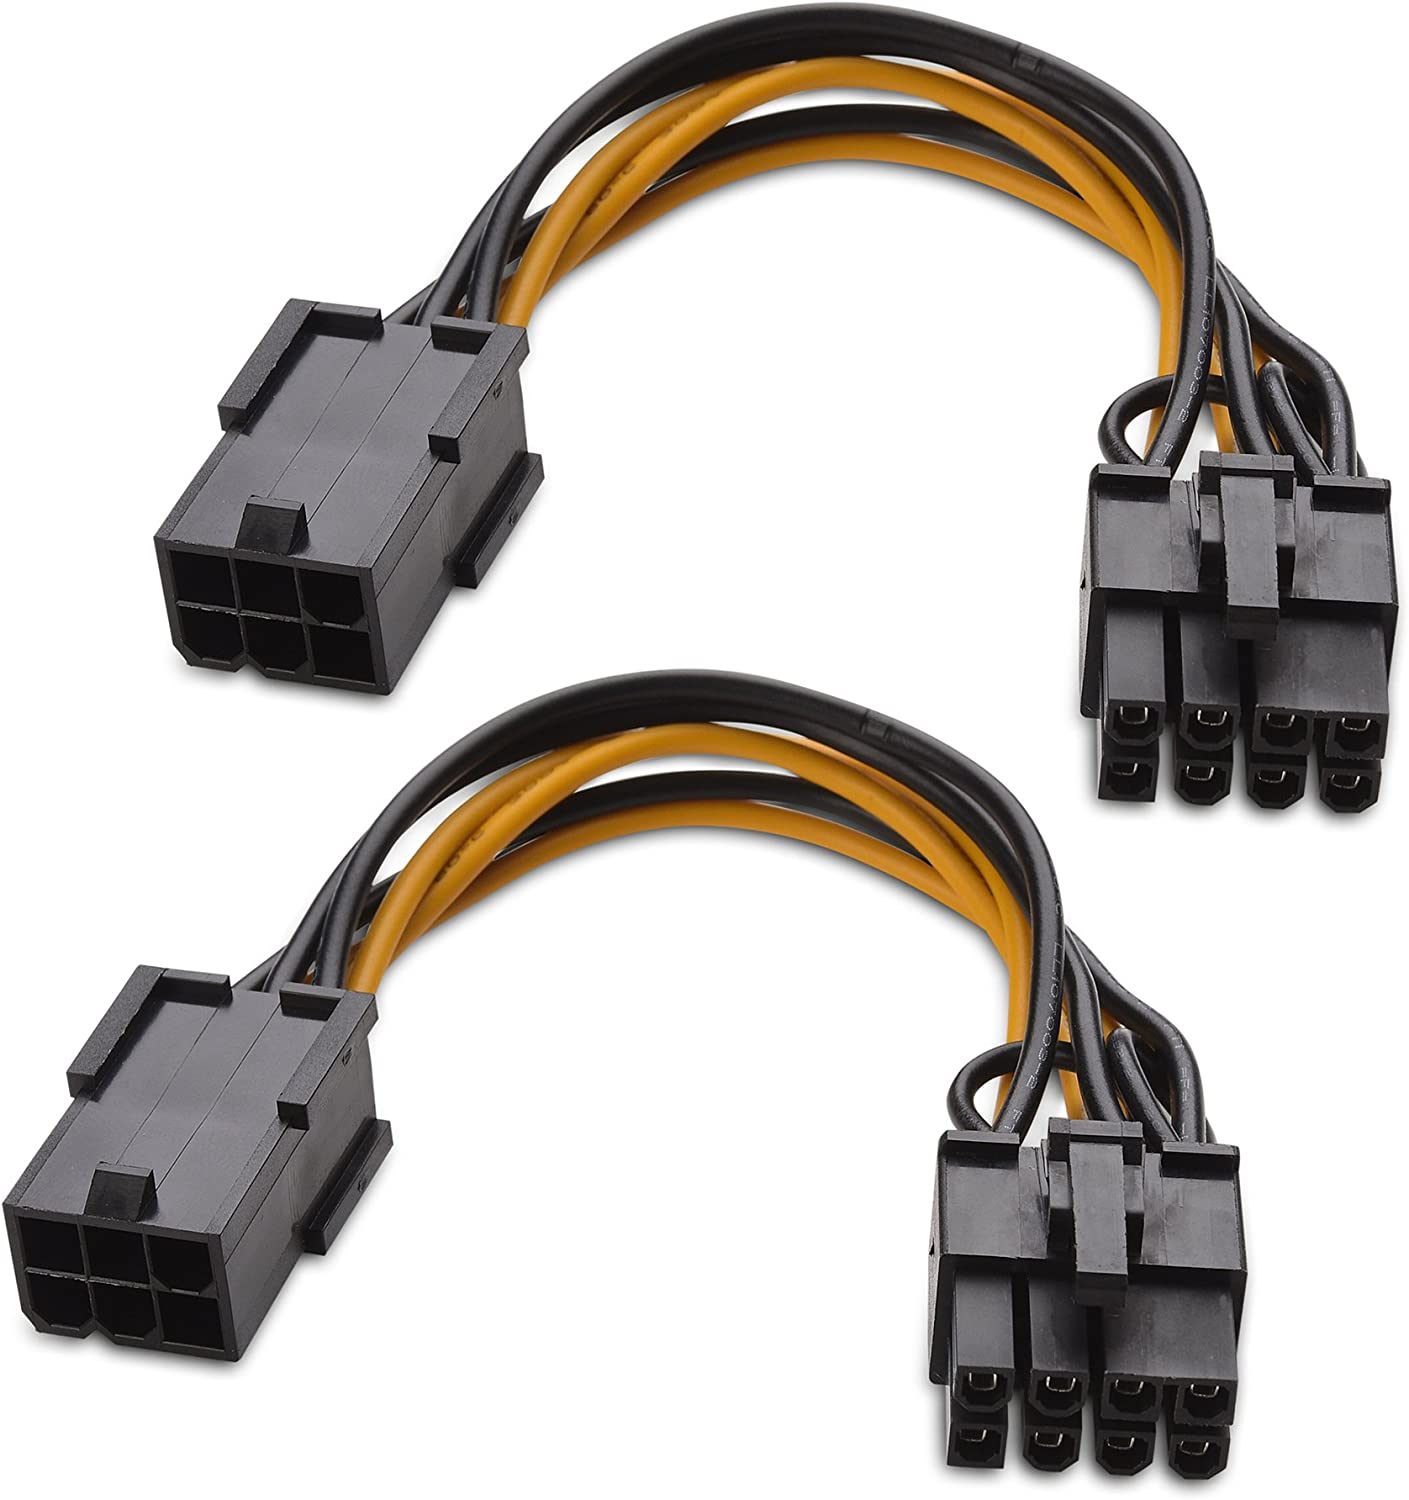 4-pin to 8-pin PCI Express Power Converter Cable for GPU Video Card PCIE PCI-E